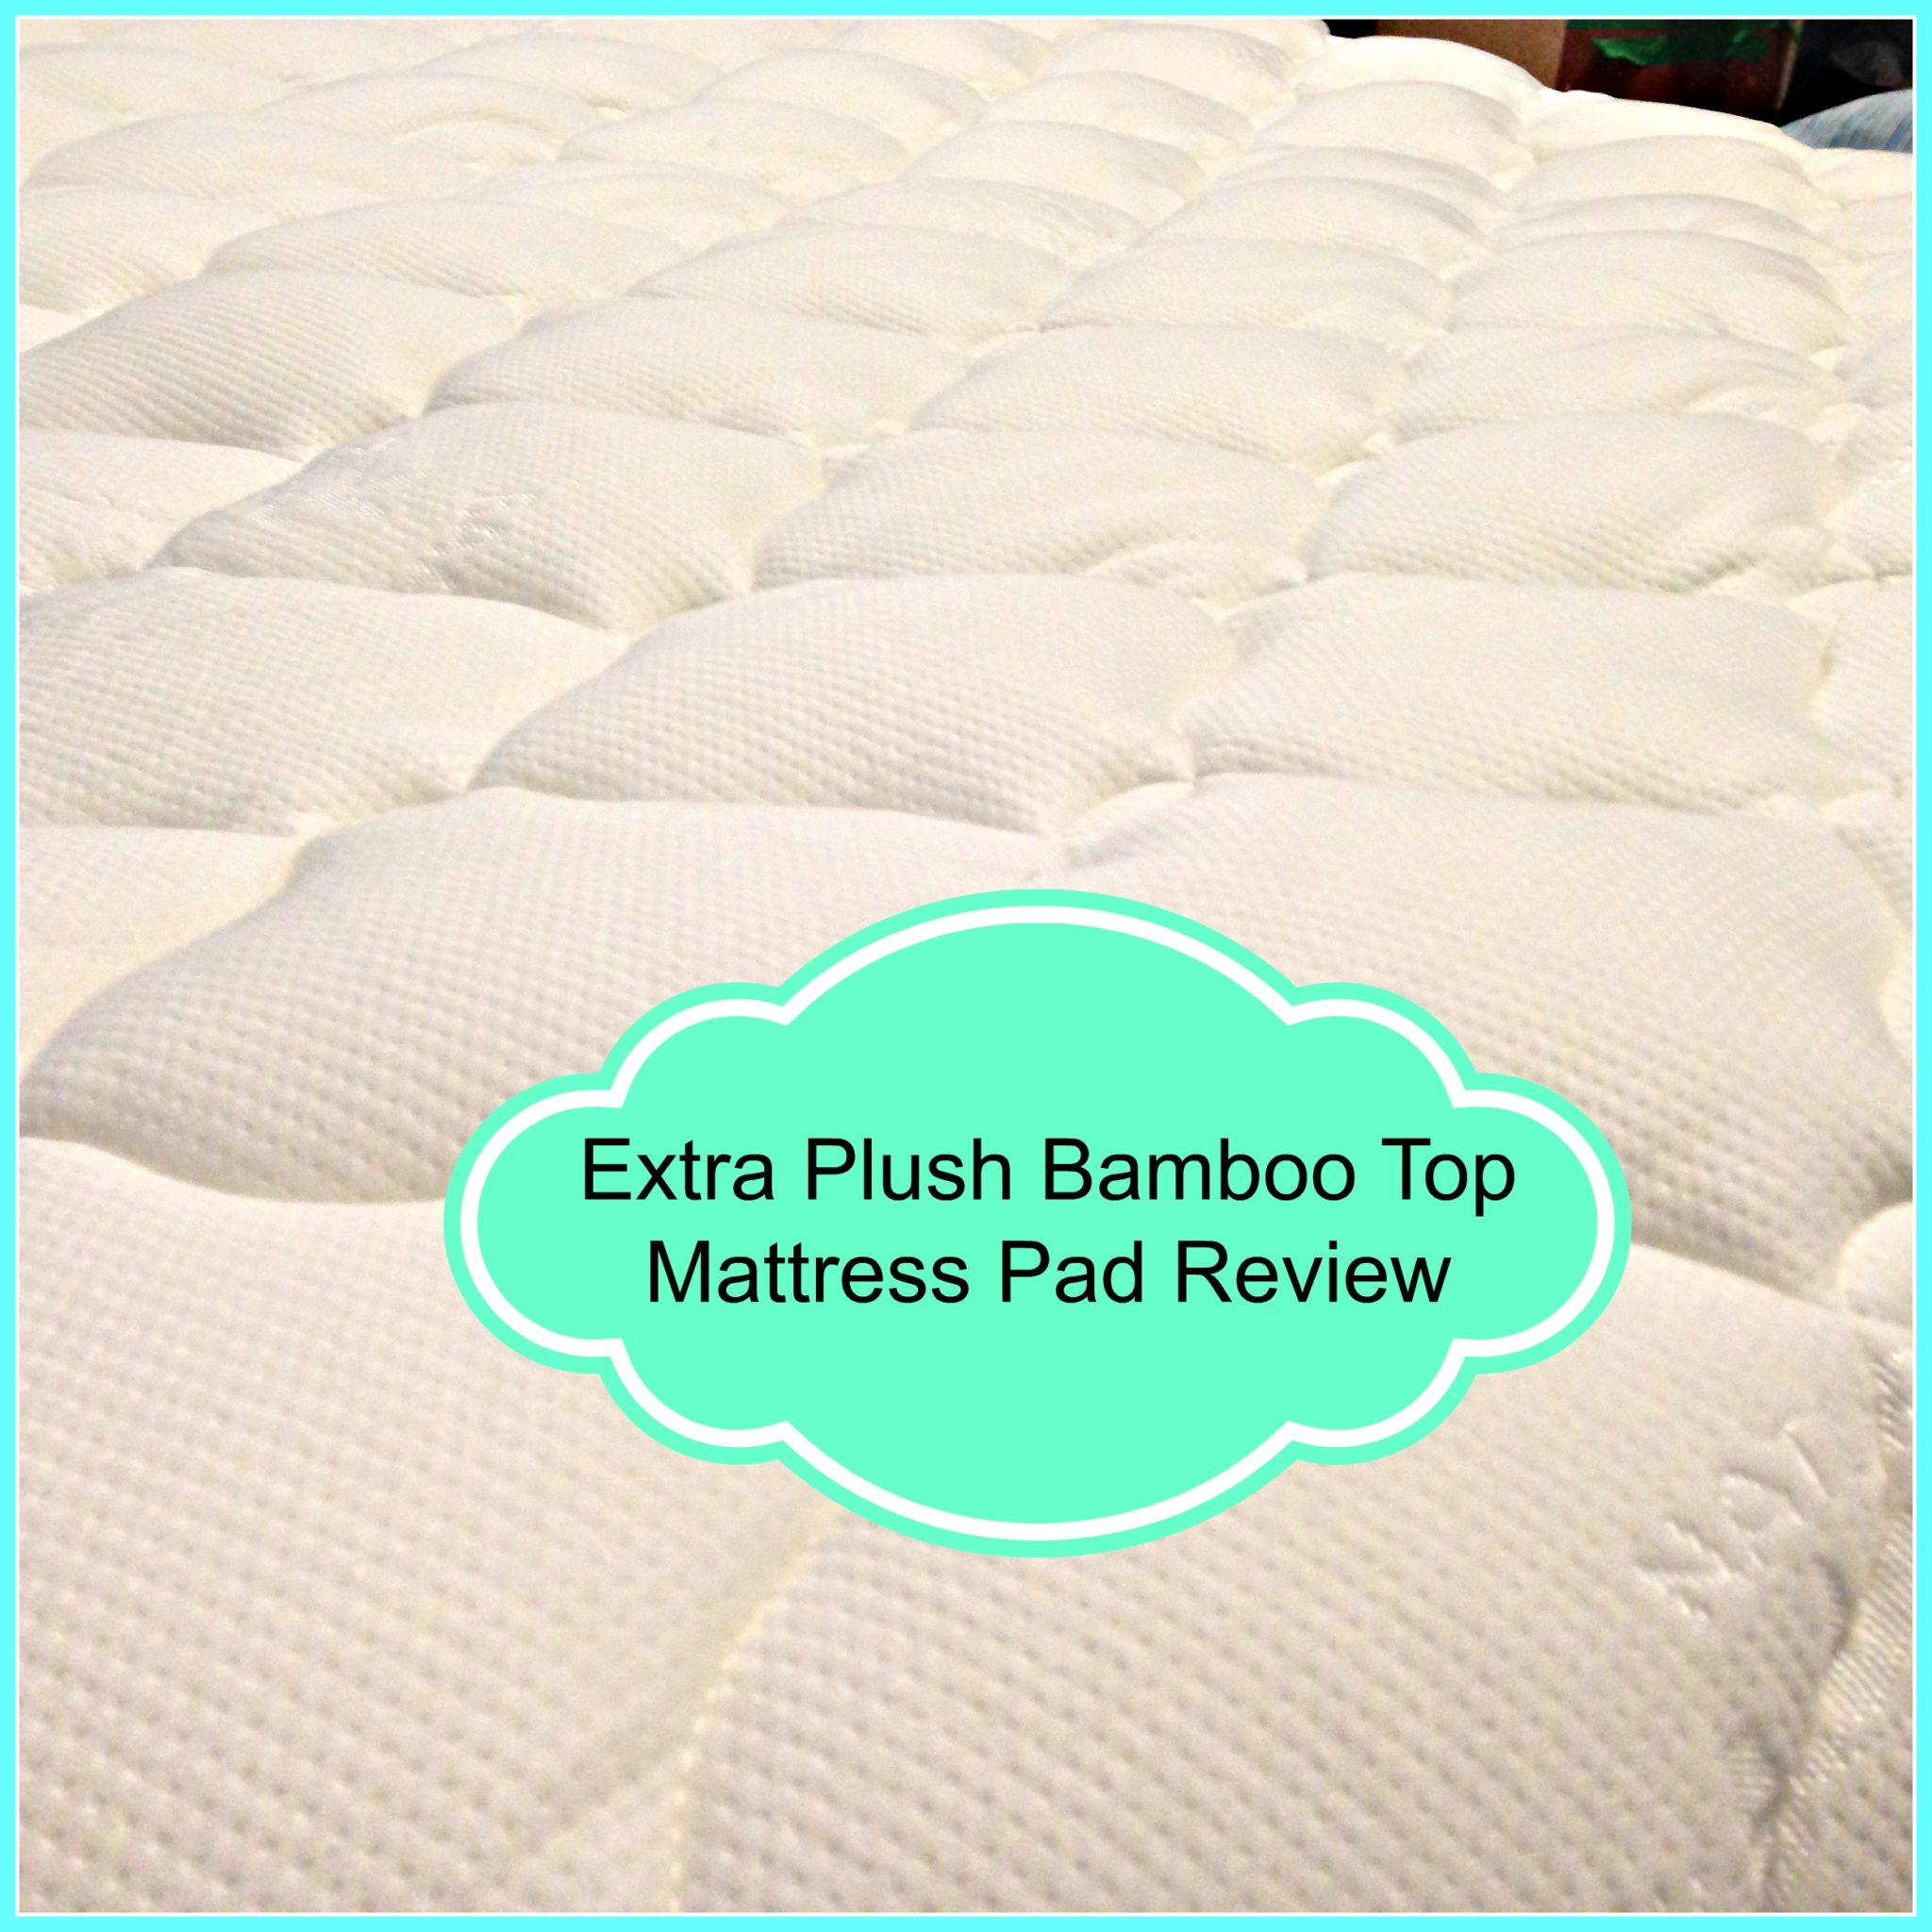 Bamboo Mattress Topper Review Mr Sandman Bring Me Dream Bamboo Top Mattress Pad